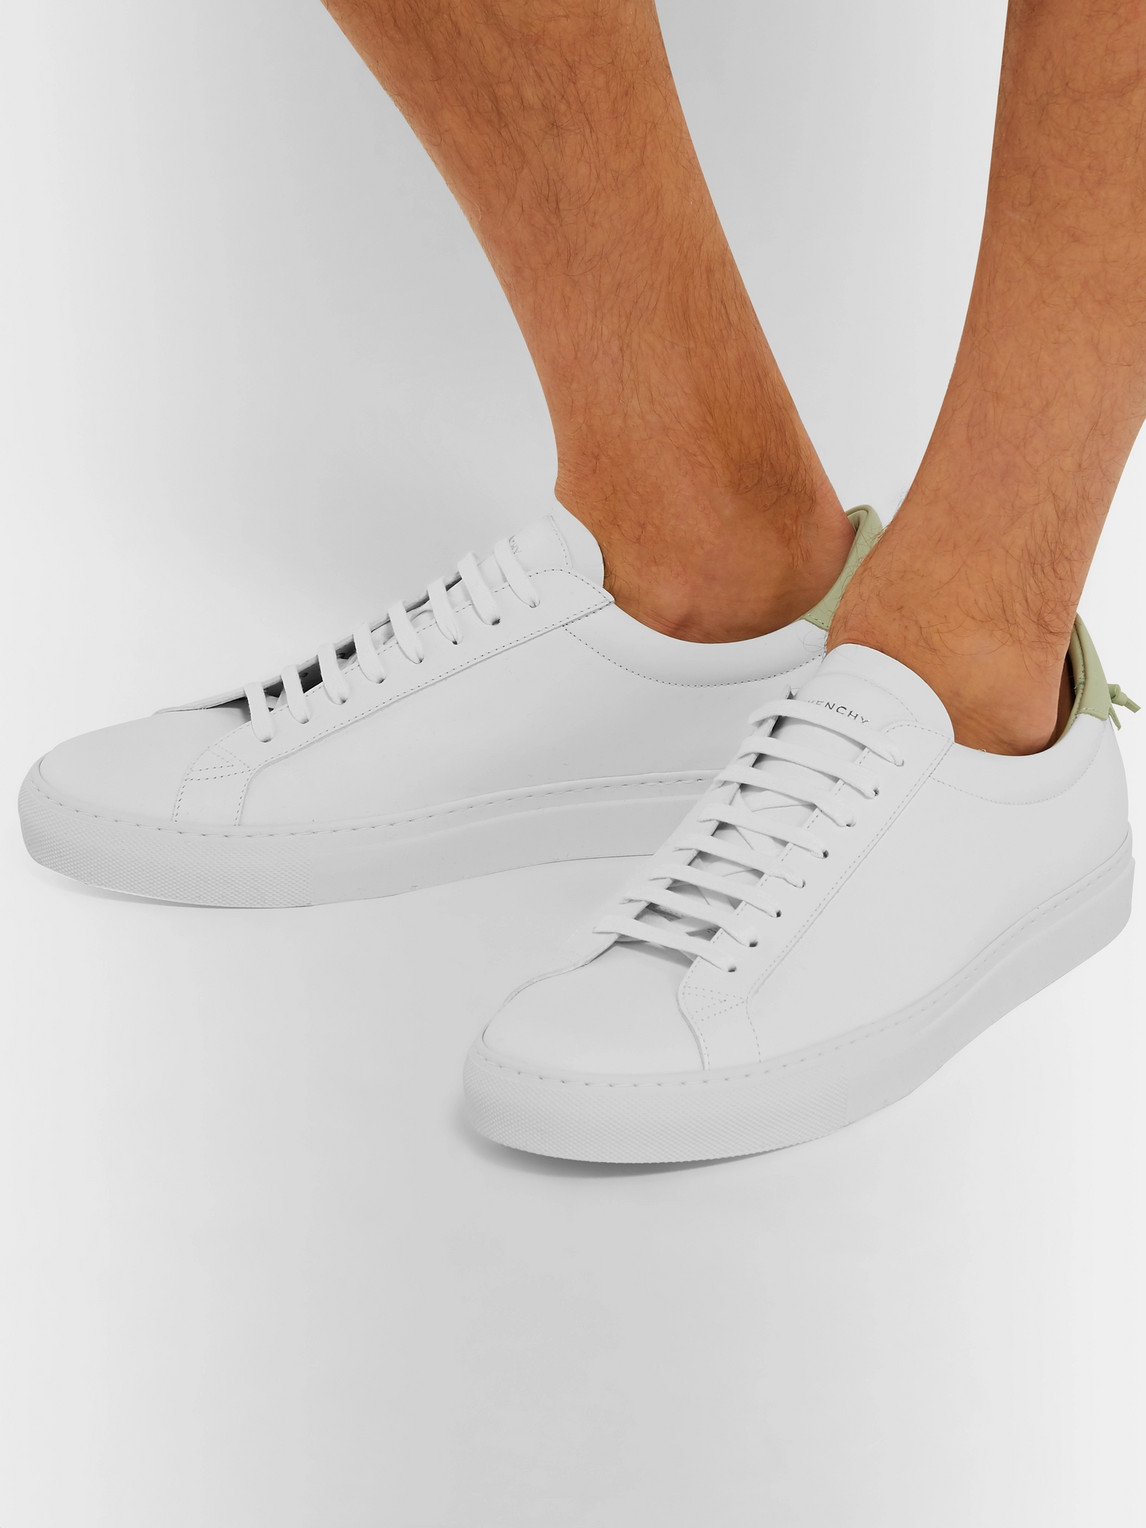 Givenchy Flats URBAN STREET LEATHER SNEAKERS